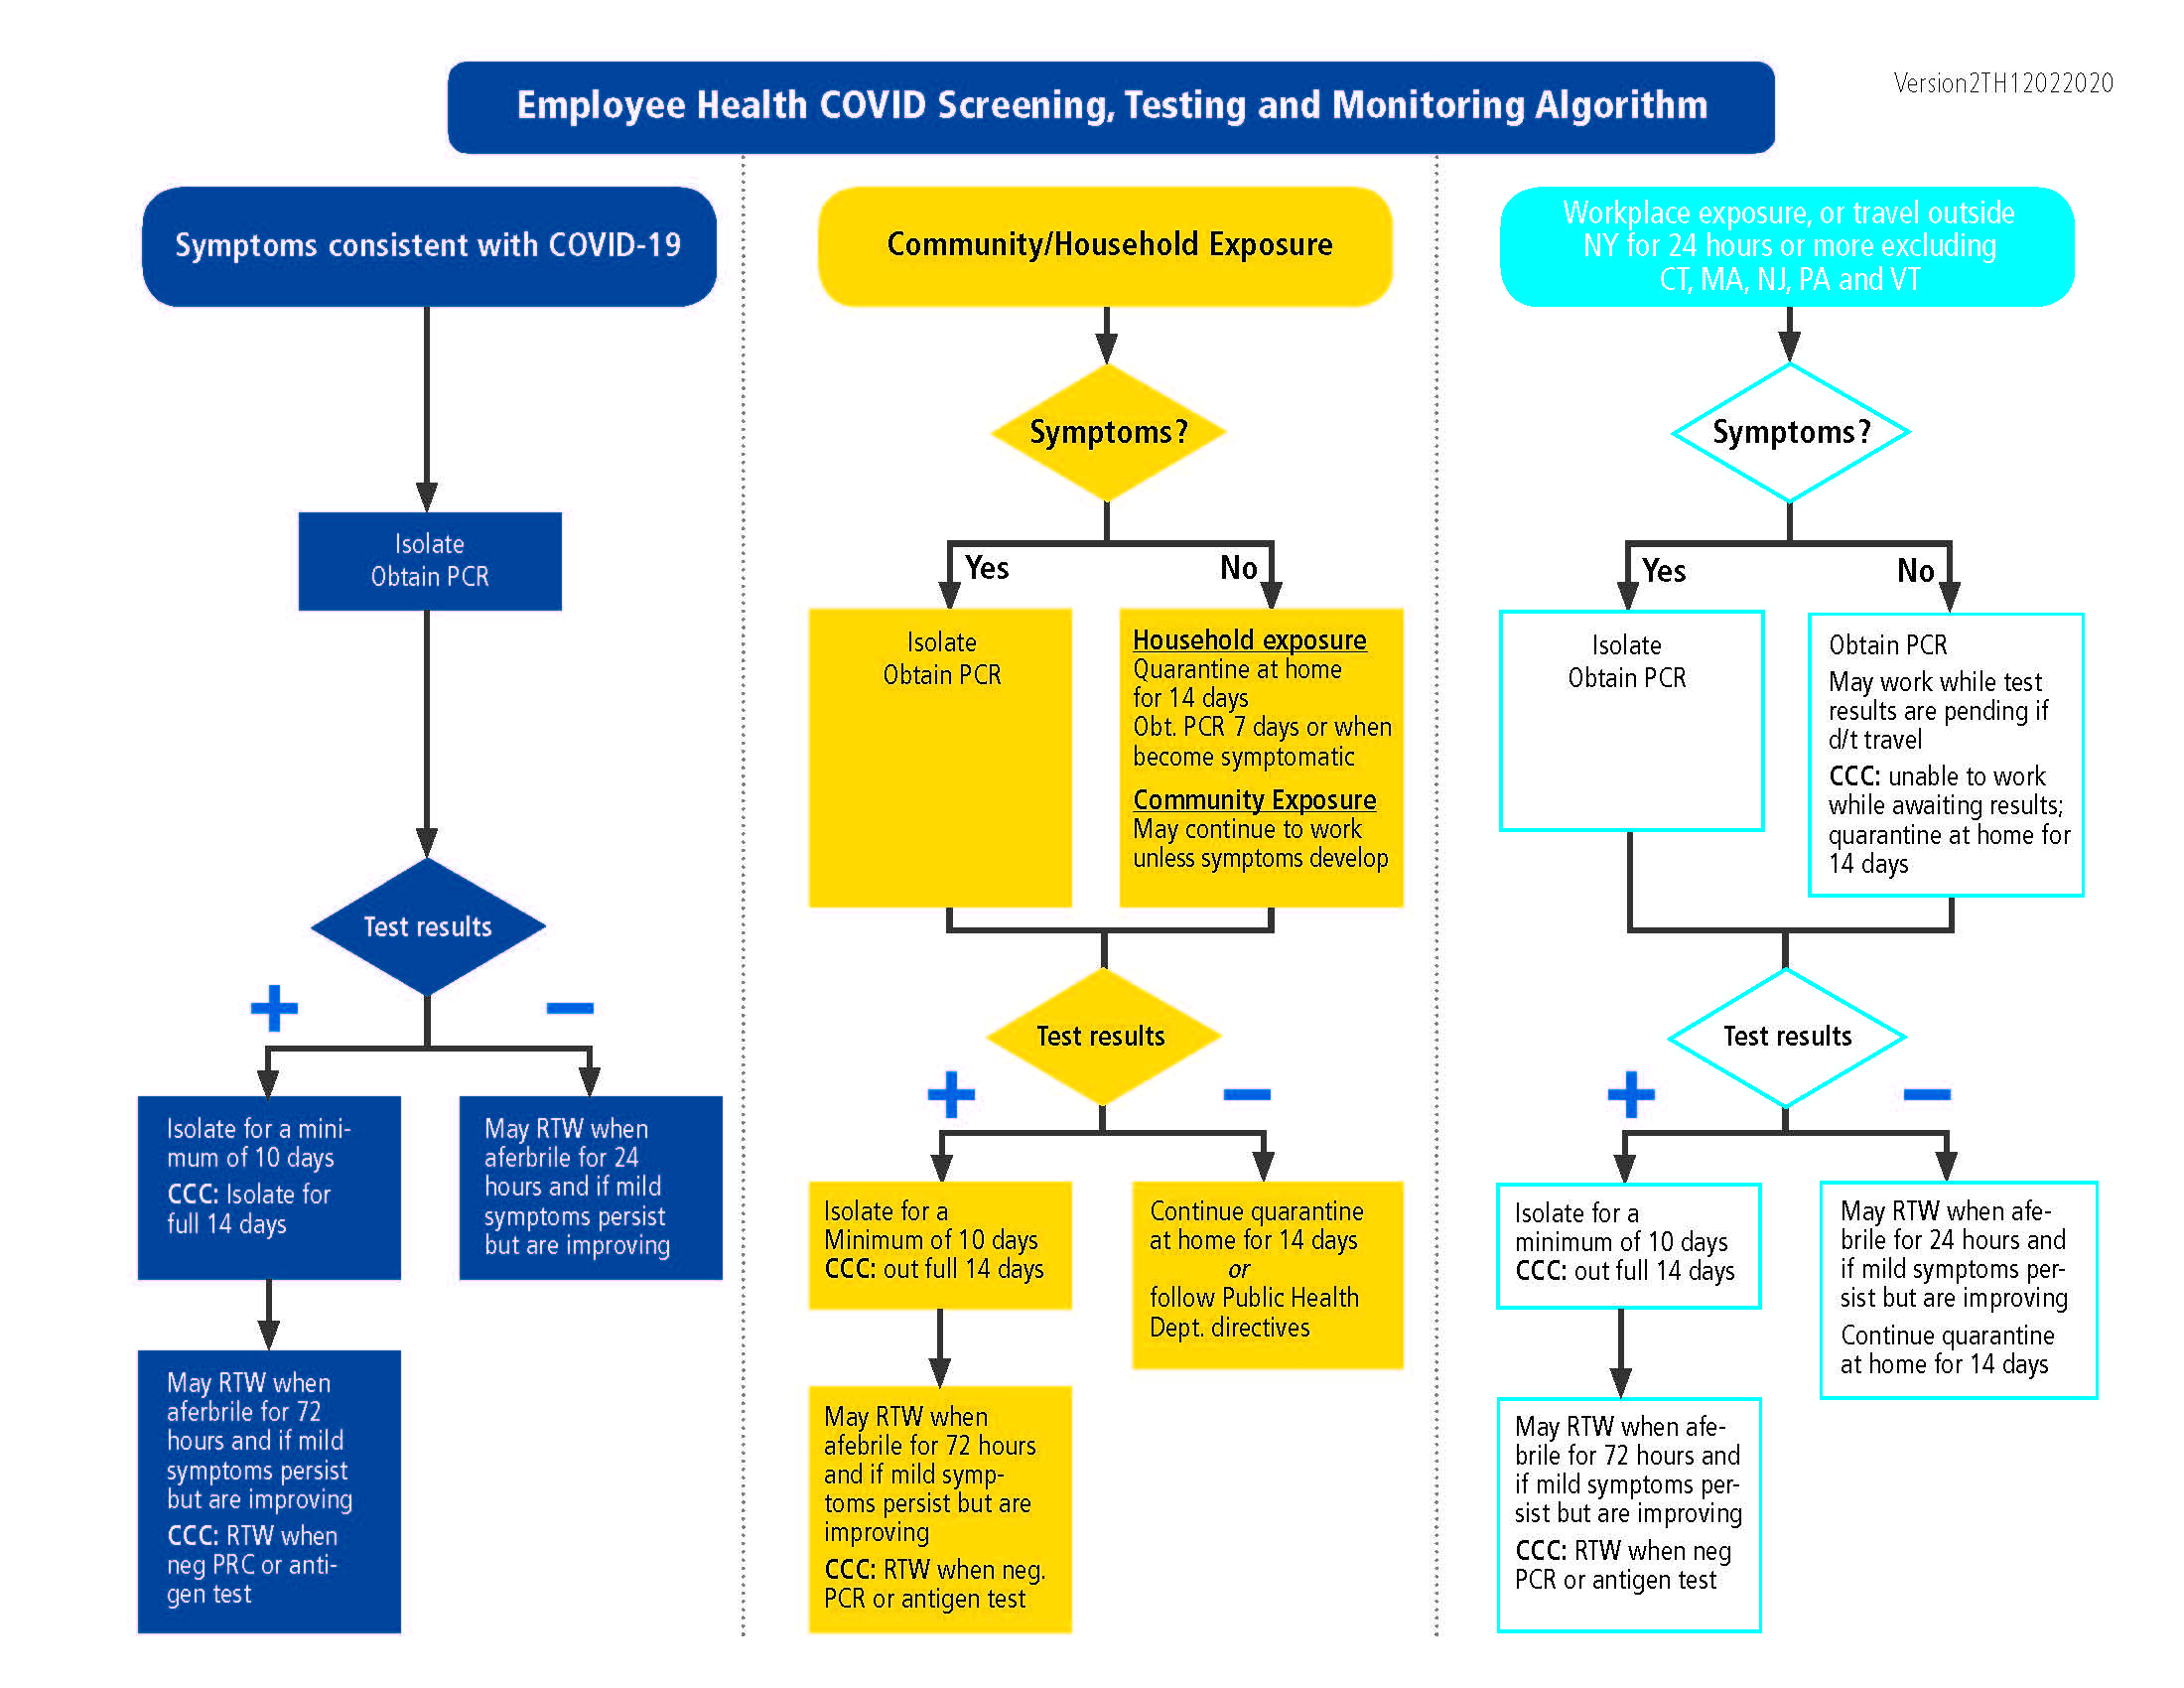 Employee Health COVID Screening, Testing and Monitoring Algorithm page 1